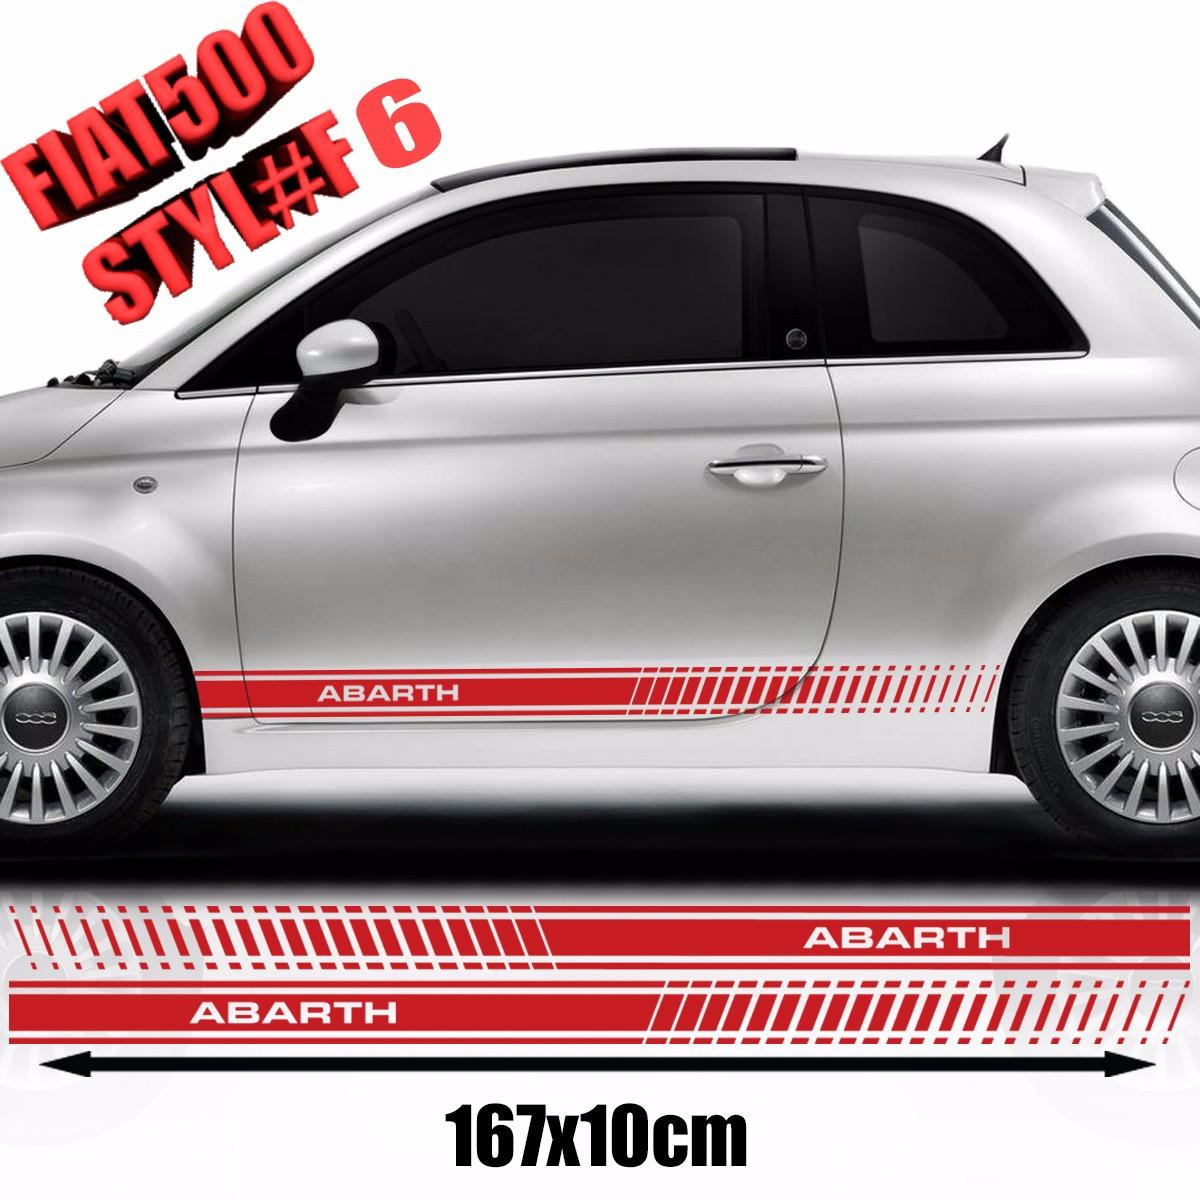 Fiat 500 Abarth Side Racing Stripes Stickers